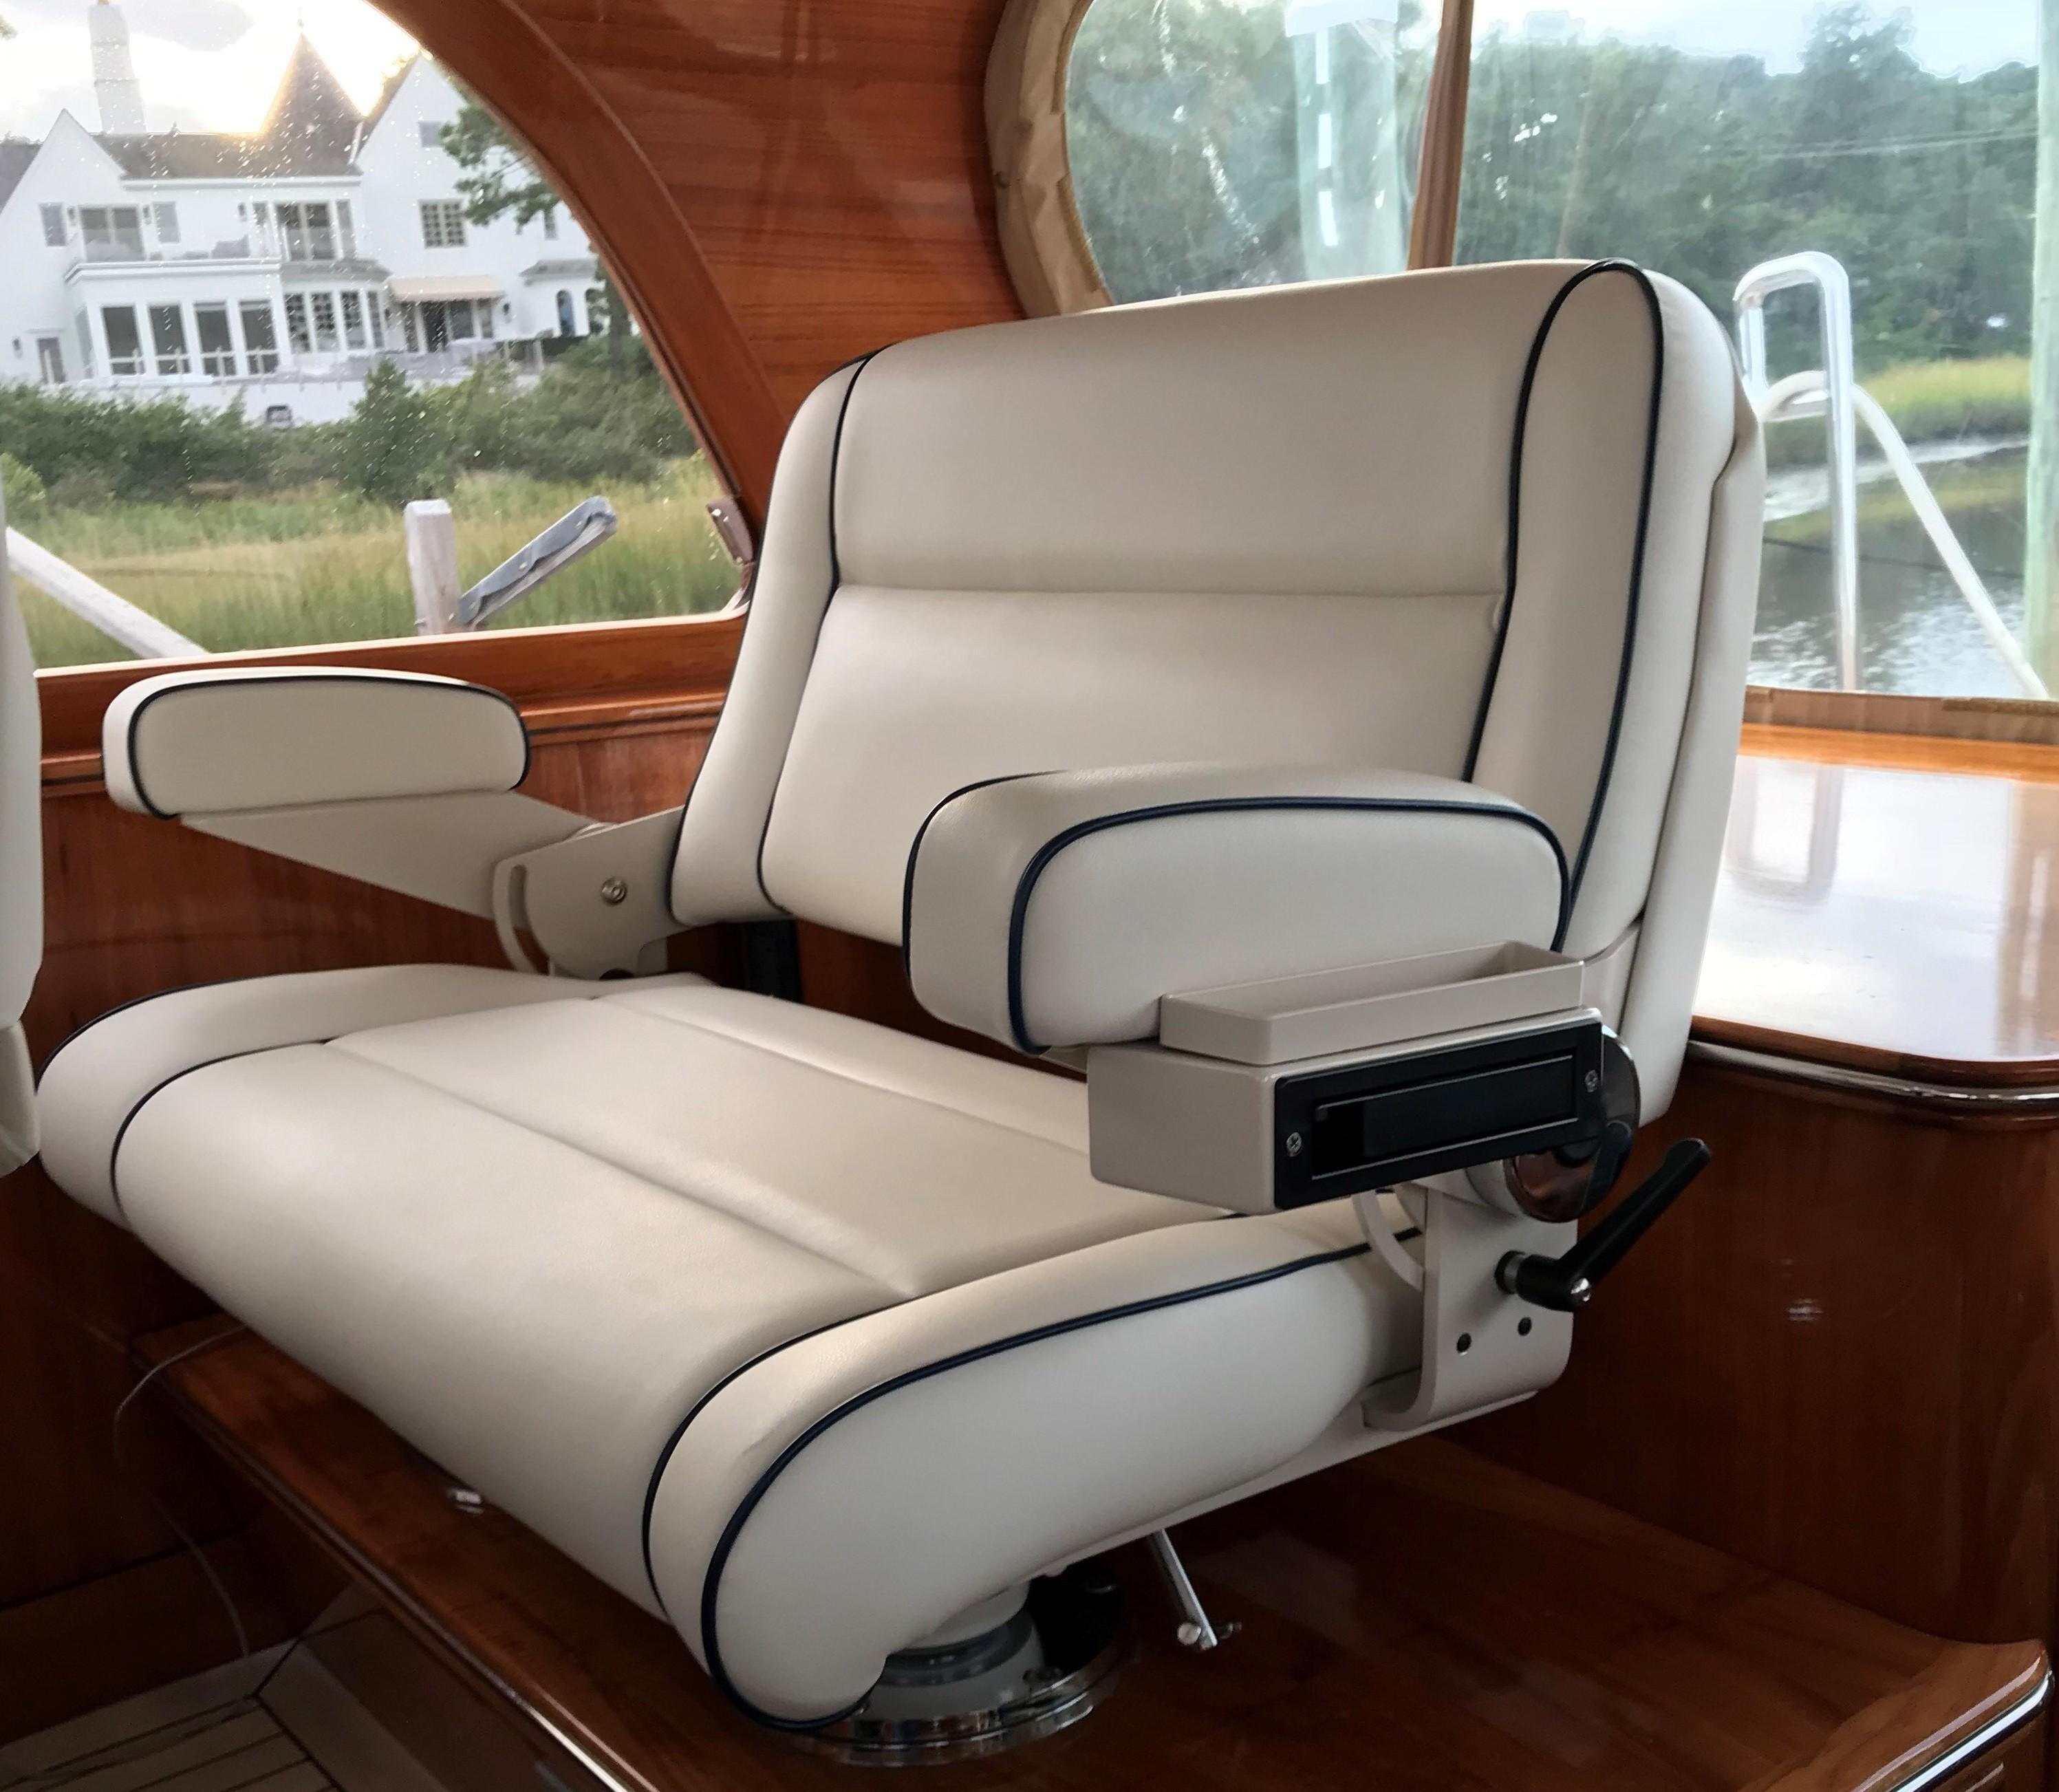 Mad Max X Ch Marine 50 Yachts For Sale Engine Diagram New Double Seat Behind Helm